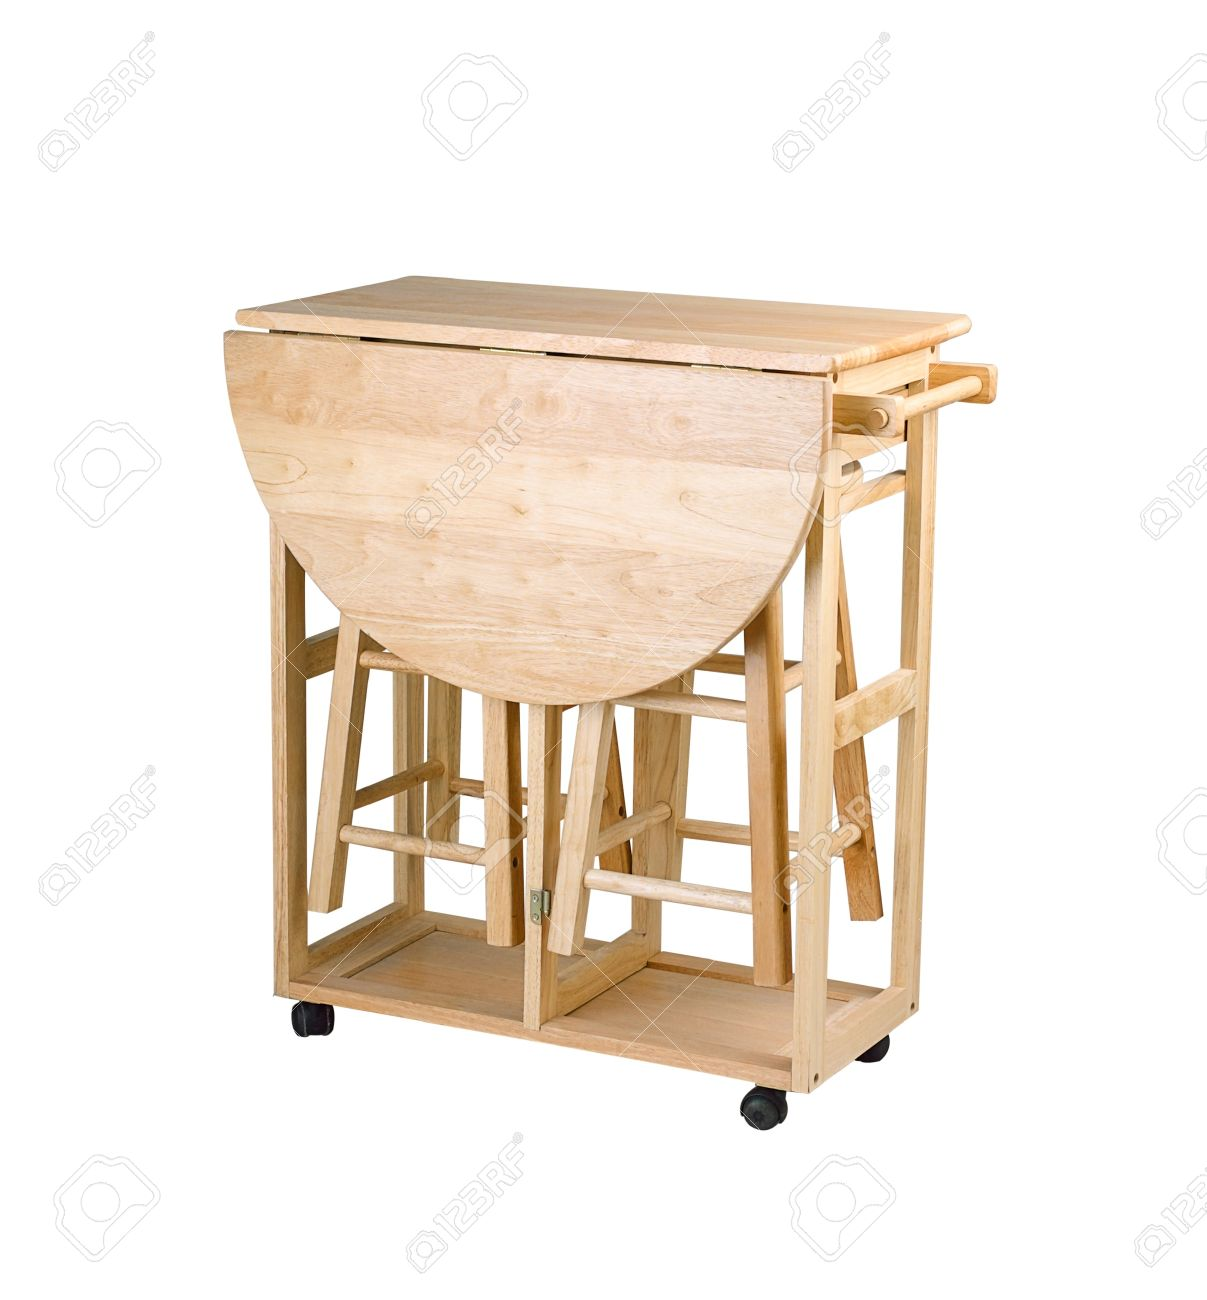 Little Kitchen Folding And Movable Wooden Table With Stools For Little Kitchen